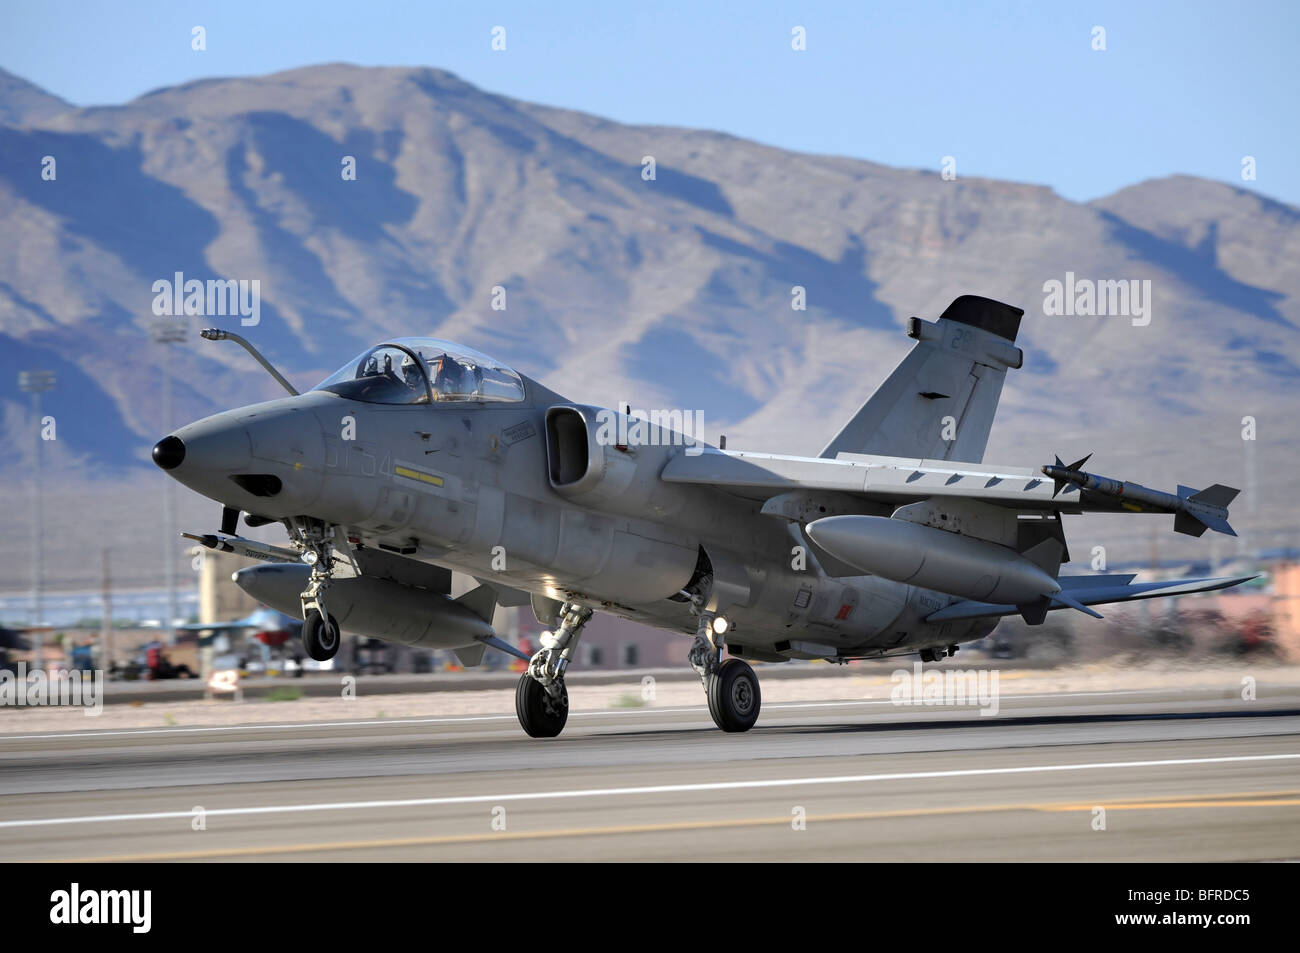 An Italian Air Force AMX fighter landing at Nellis Air Force Base in Nevada. - Stock Image